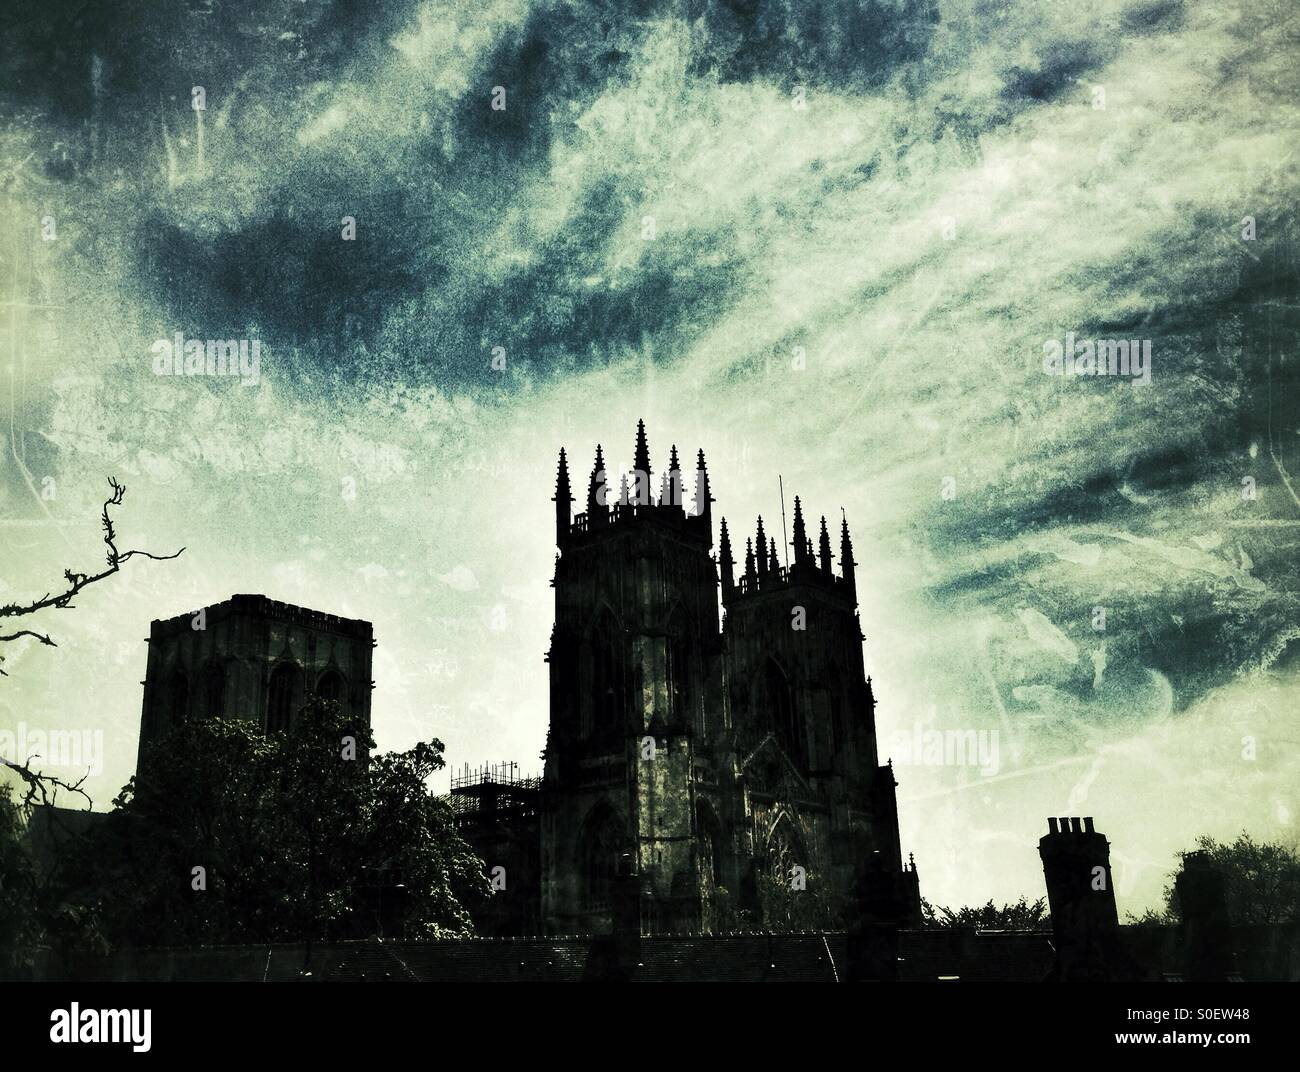 York Minster silhouetted against dramatic sky. York Yorkshire England Great Britain. - Stock Image